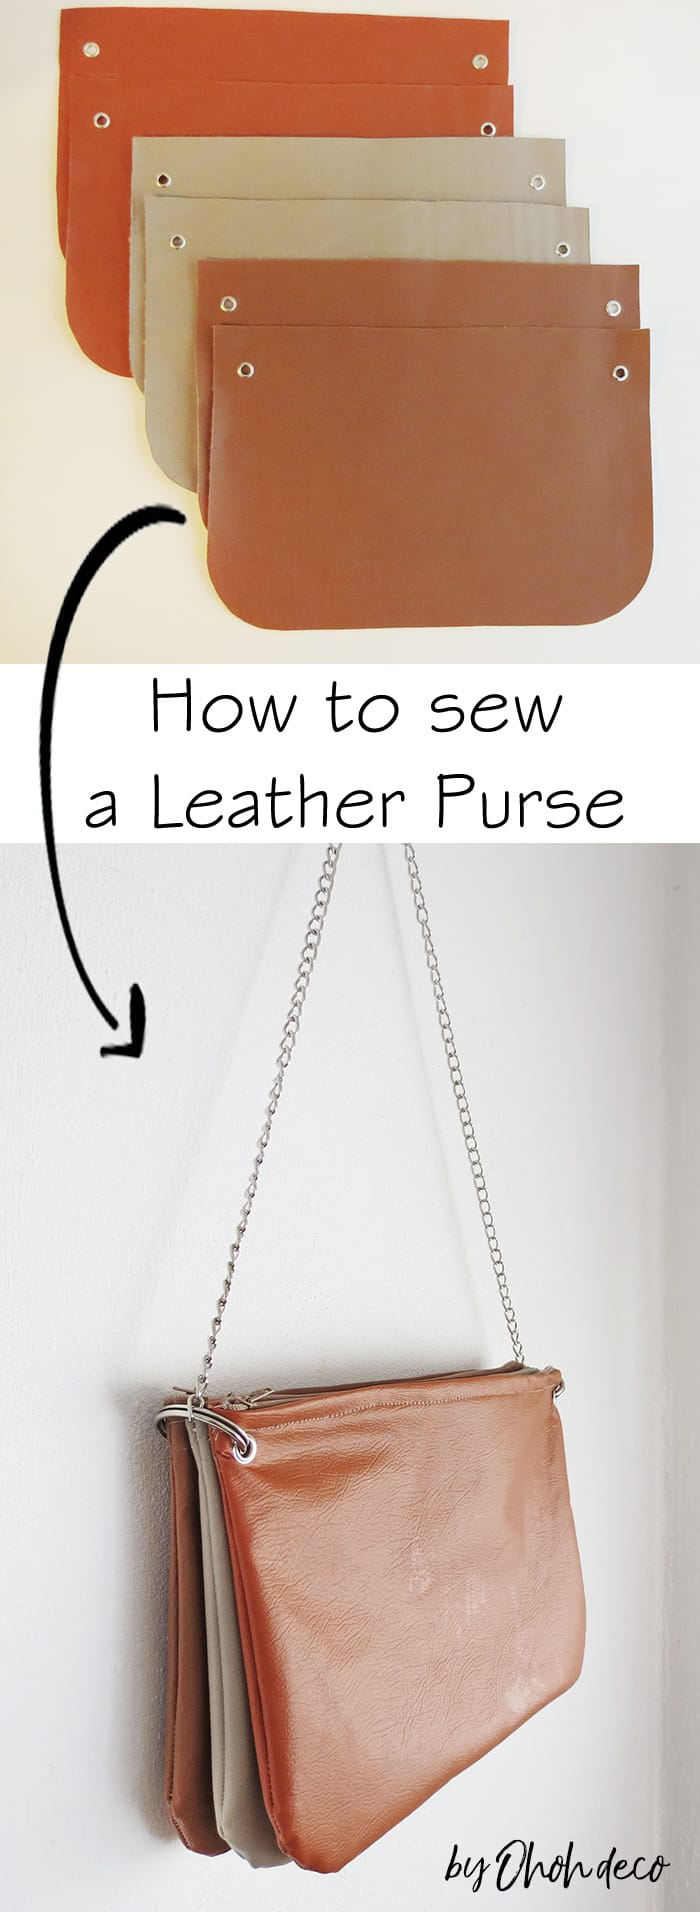 how to sew a leather purse